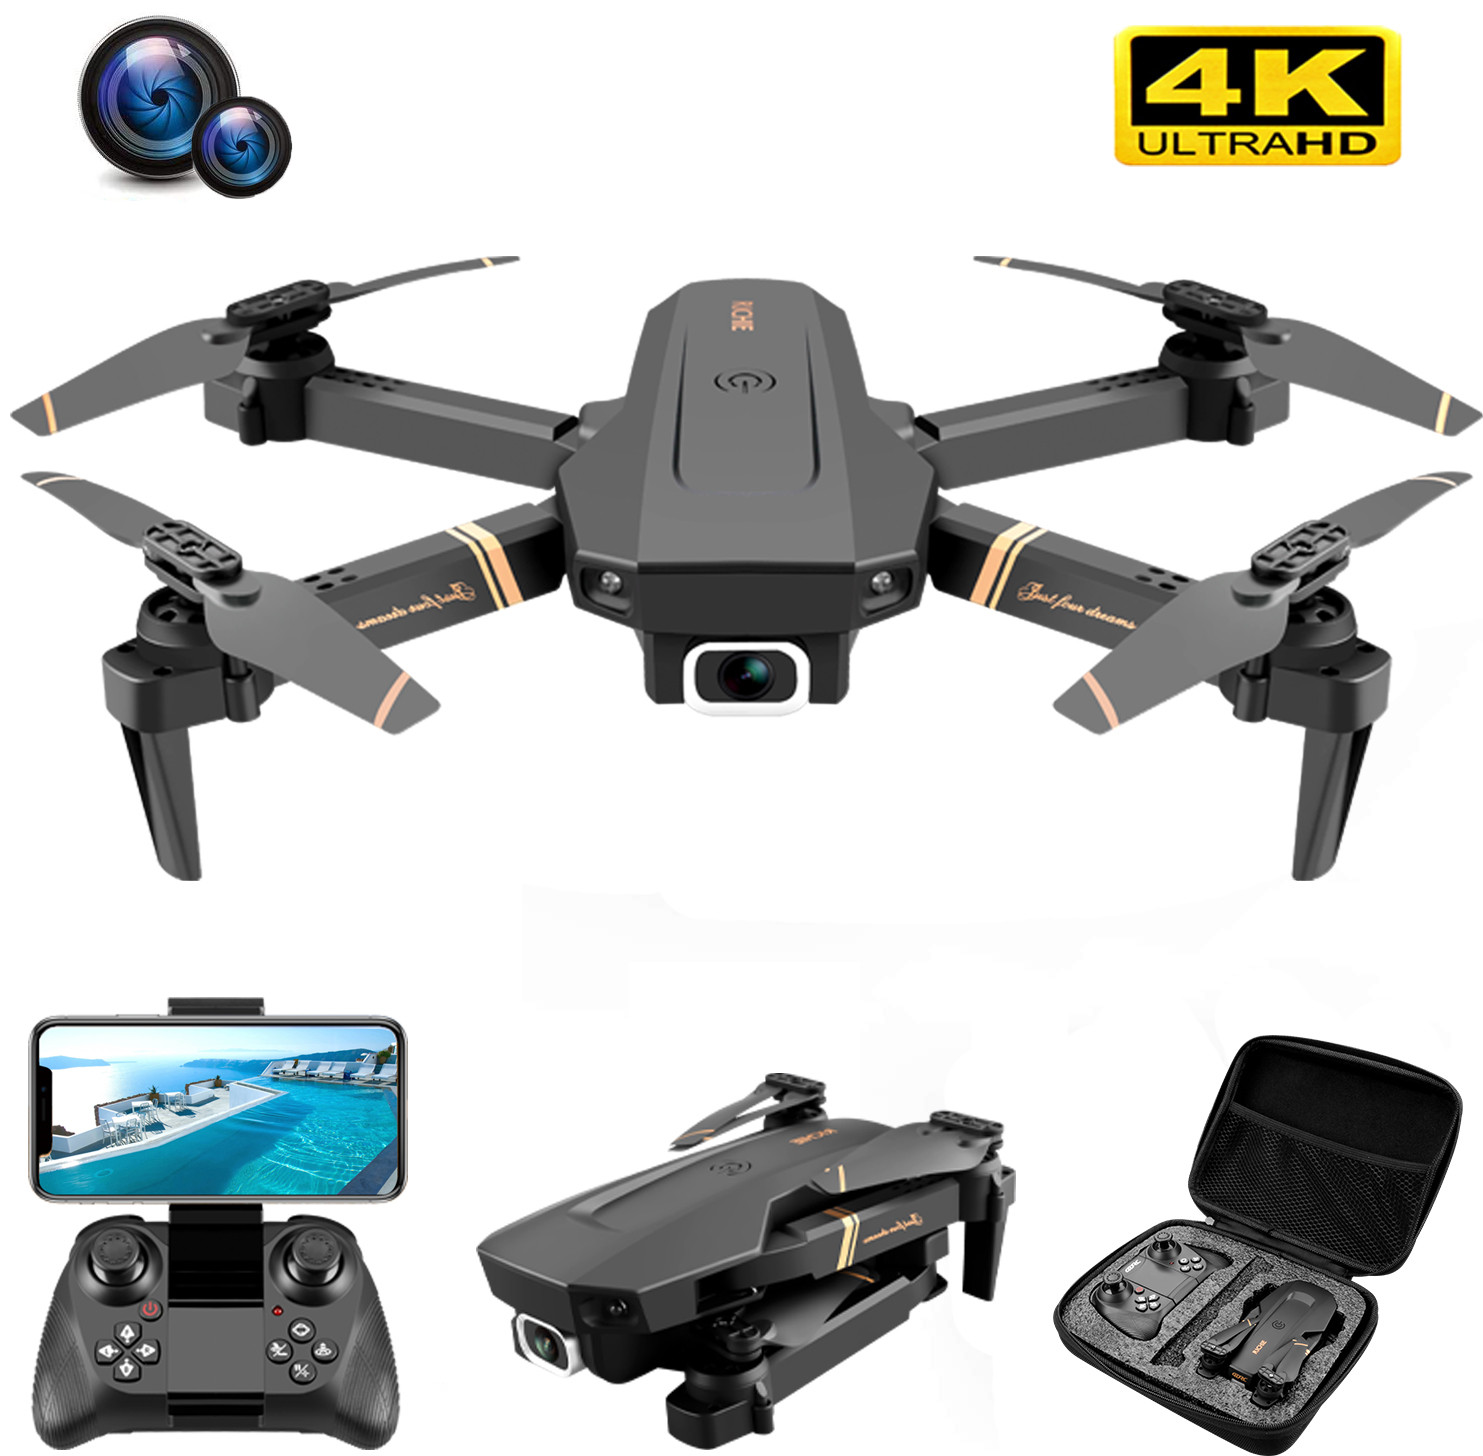 V4 Rc Drone 4k HD Wide Angle Camera 1080P WiFi fpv Drone Dual Camera Quadcopter Real time transmission Helicopter Toys|RC Helicopters| - AliExpress